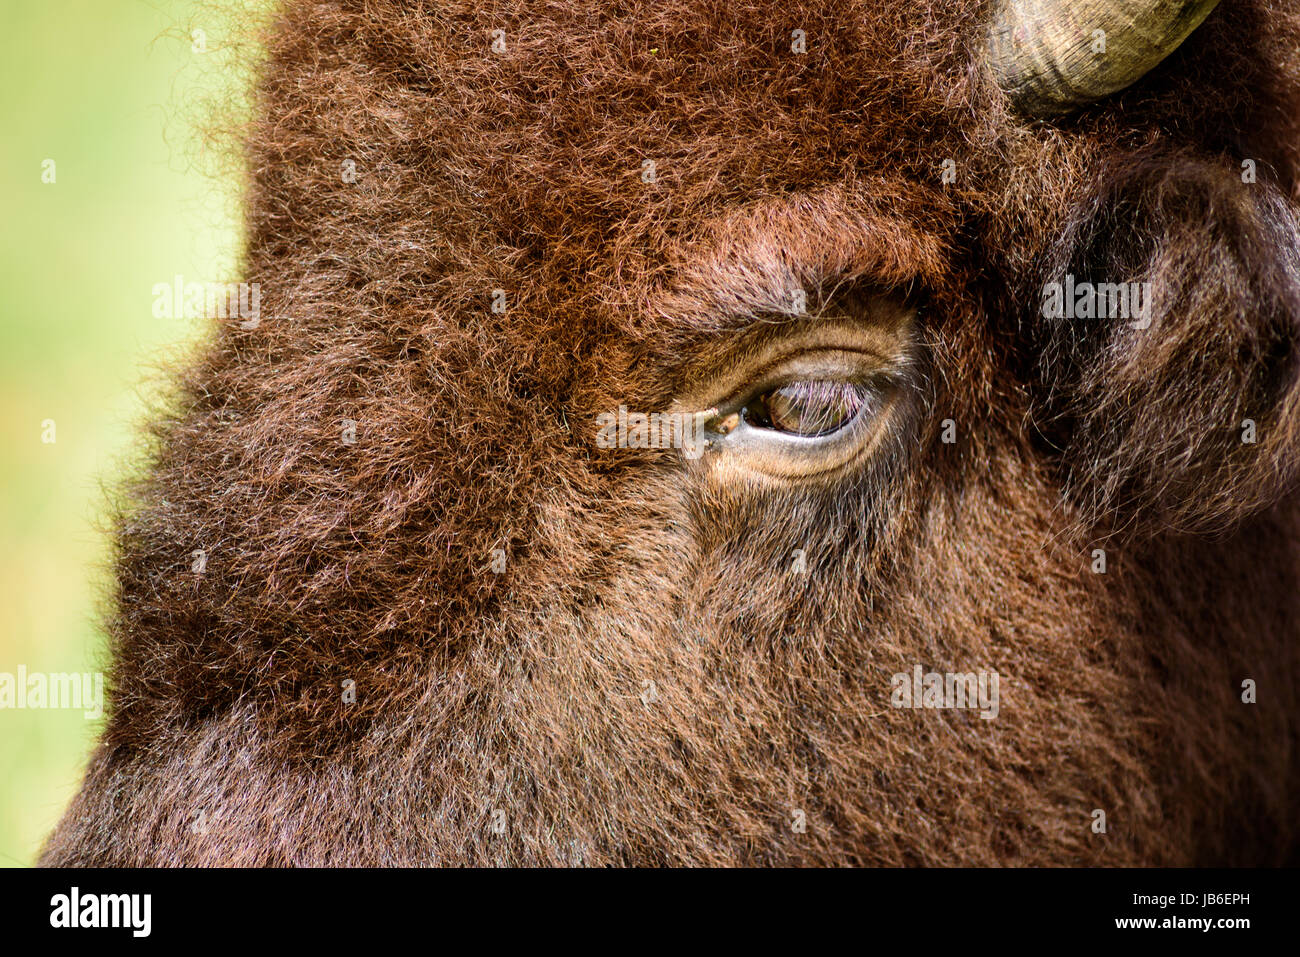 American Bison have poor eyesight and acute hearing an enhanced sense of smell. - Stock Image